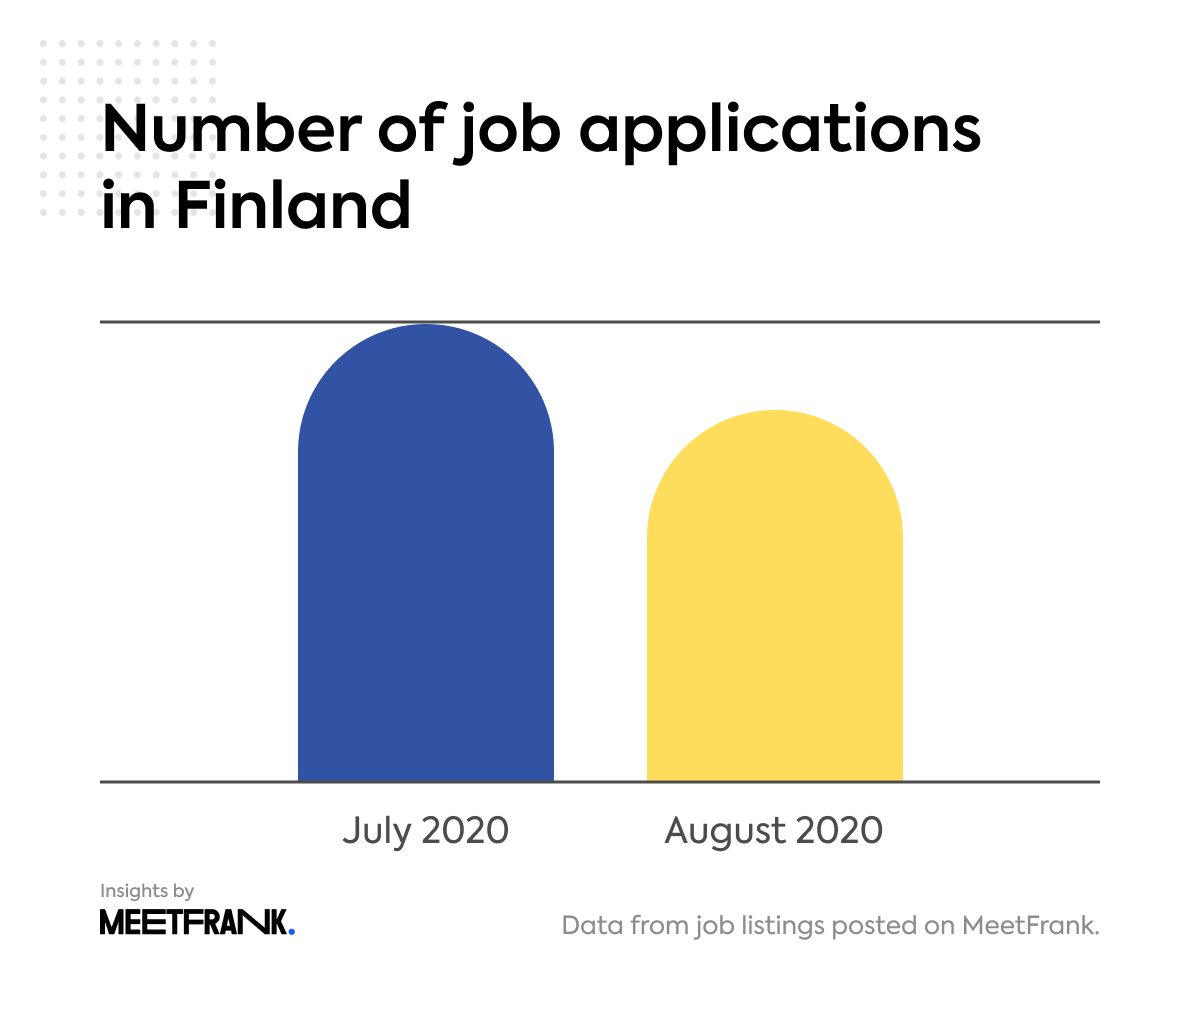 number of job applications in Finland in August